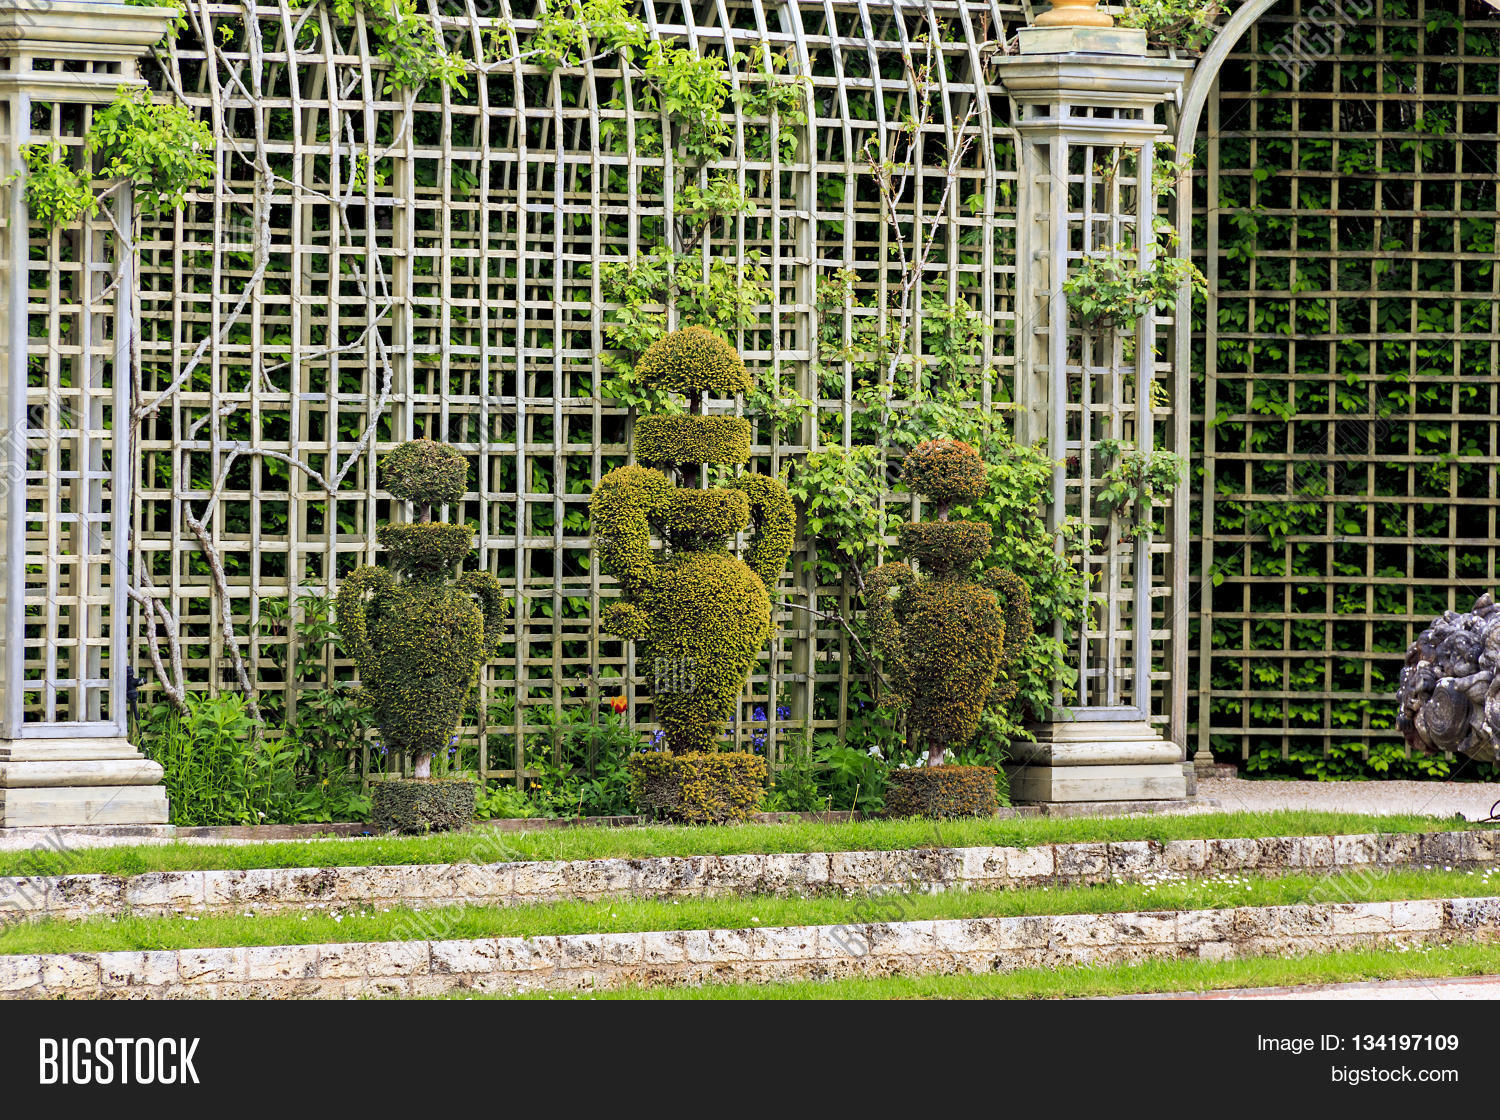 "VERSAILLES, FRANCE - MAY 12, 2013: These trees are cut in the form of antique vases which corresponds to the spirit of bosquets ""Enceladus""."